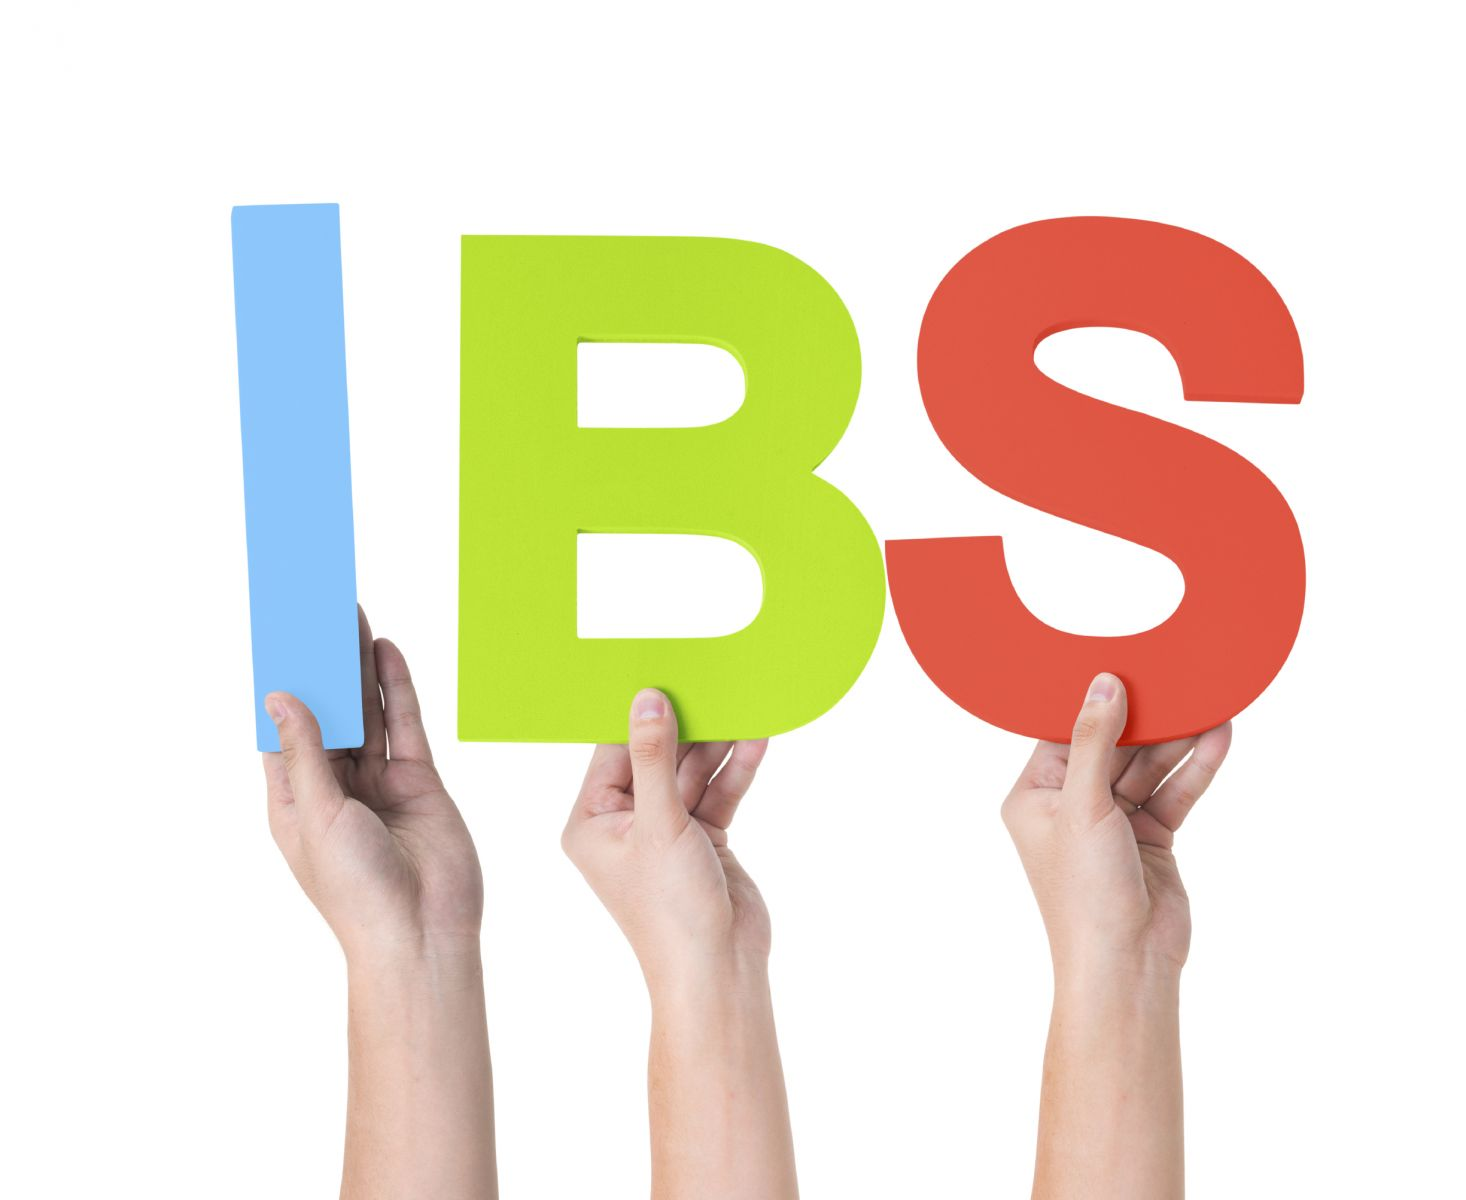 irritable bowel syndrome essay Diseases margaret mcgannon irritable bowel syndrome (ibs) is a disorder that can cause an individual to have severe abdominal pain and cramping, changes in.